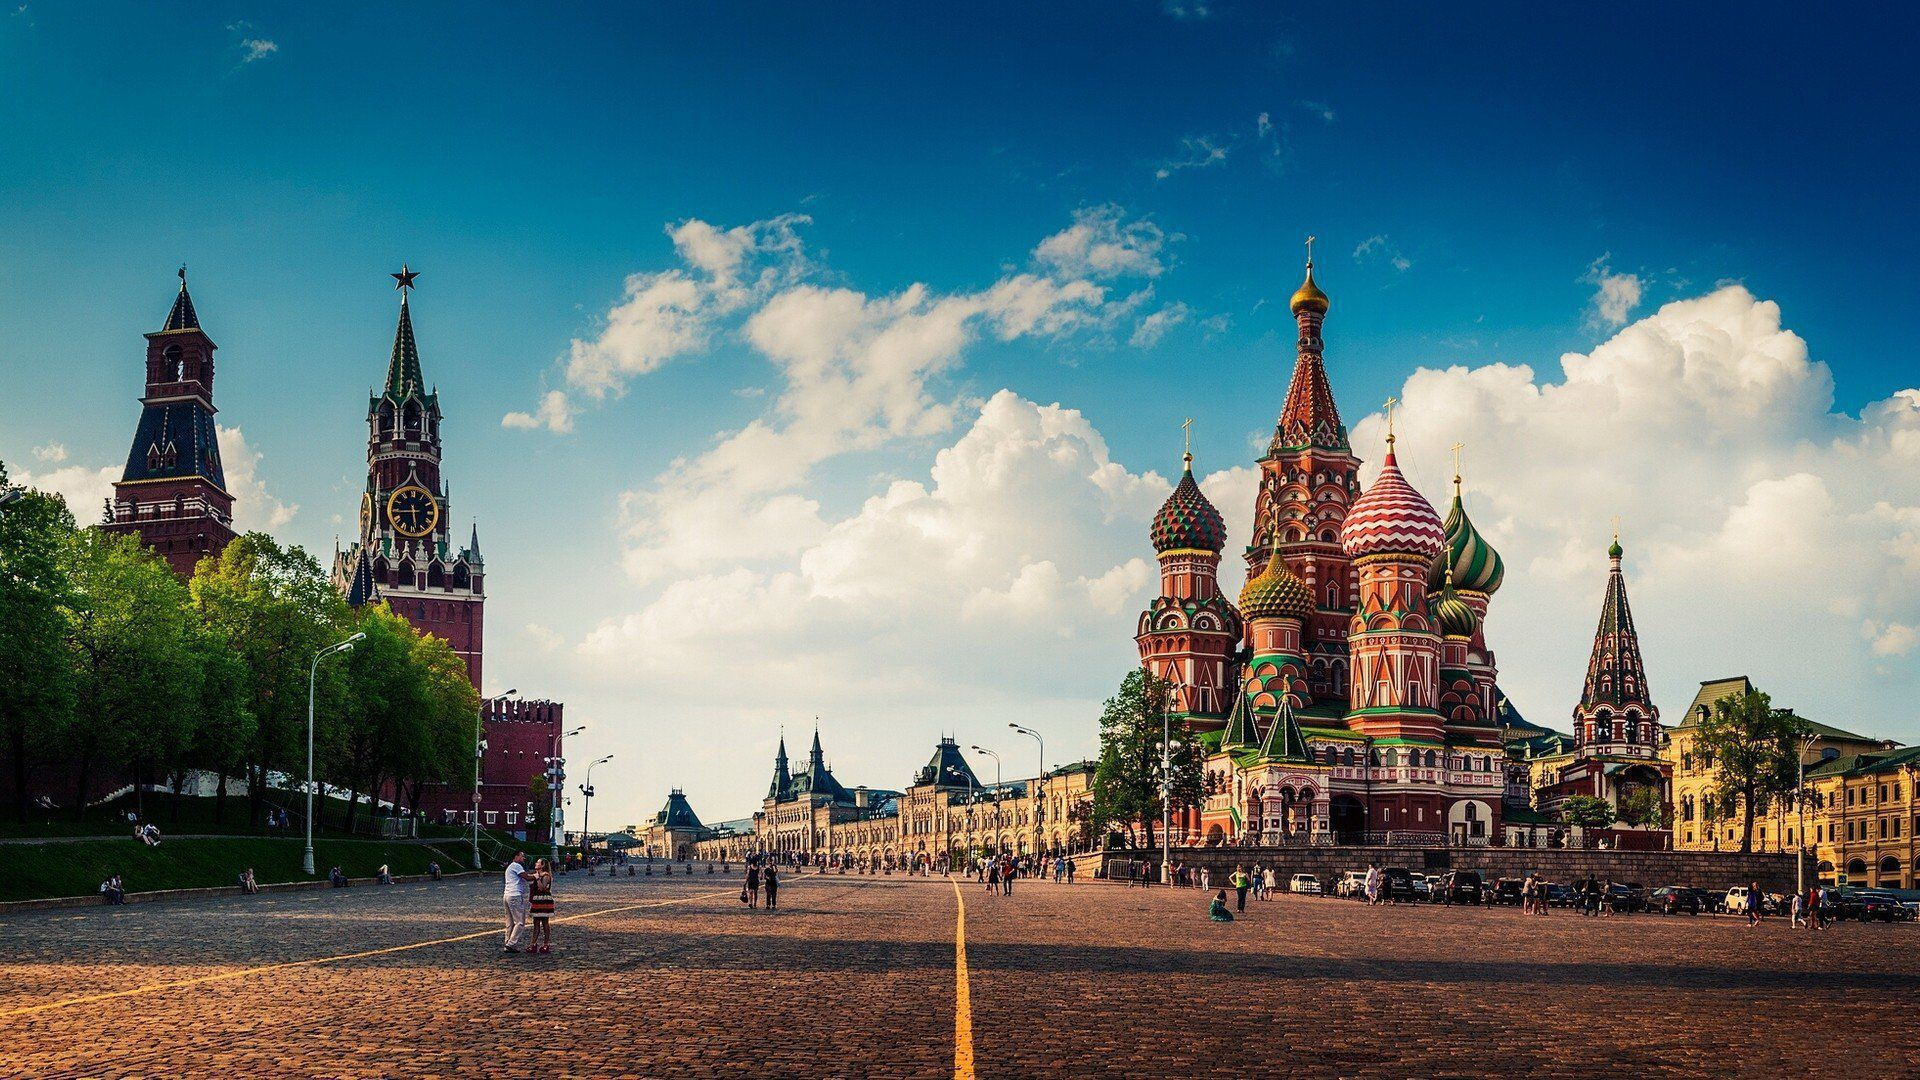 moscow wallpapers high resolution - photo #5